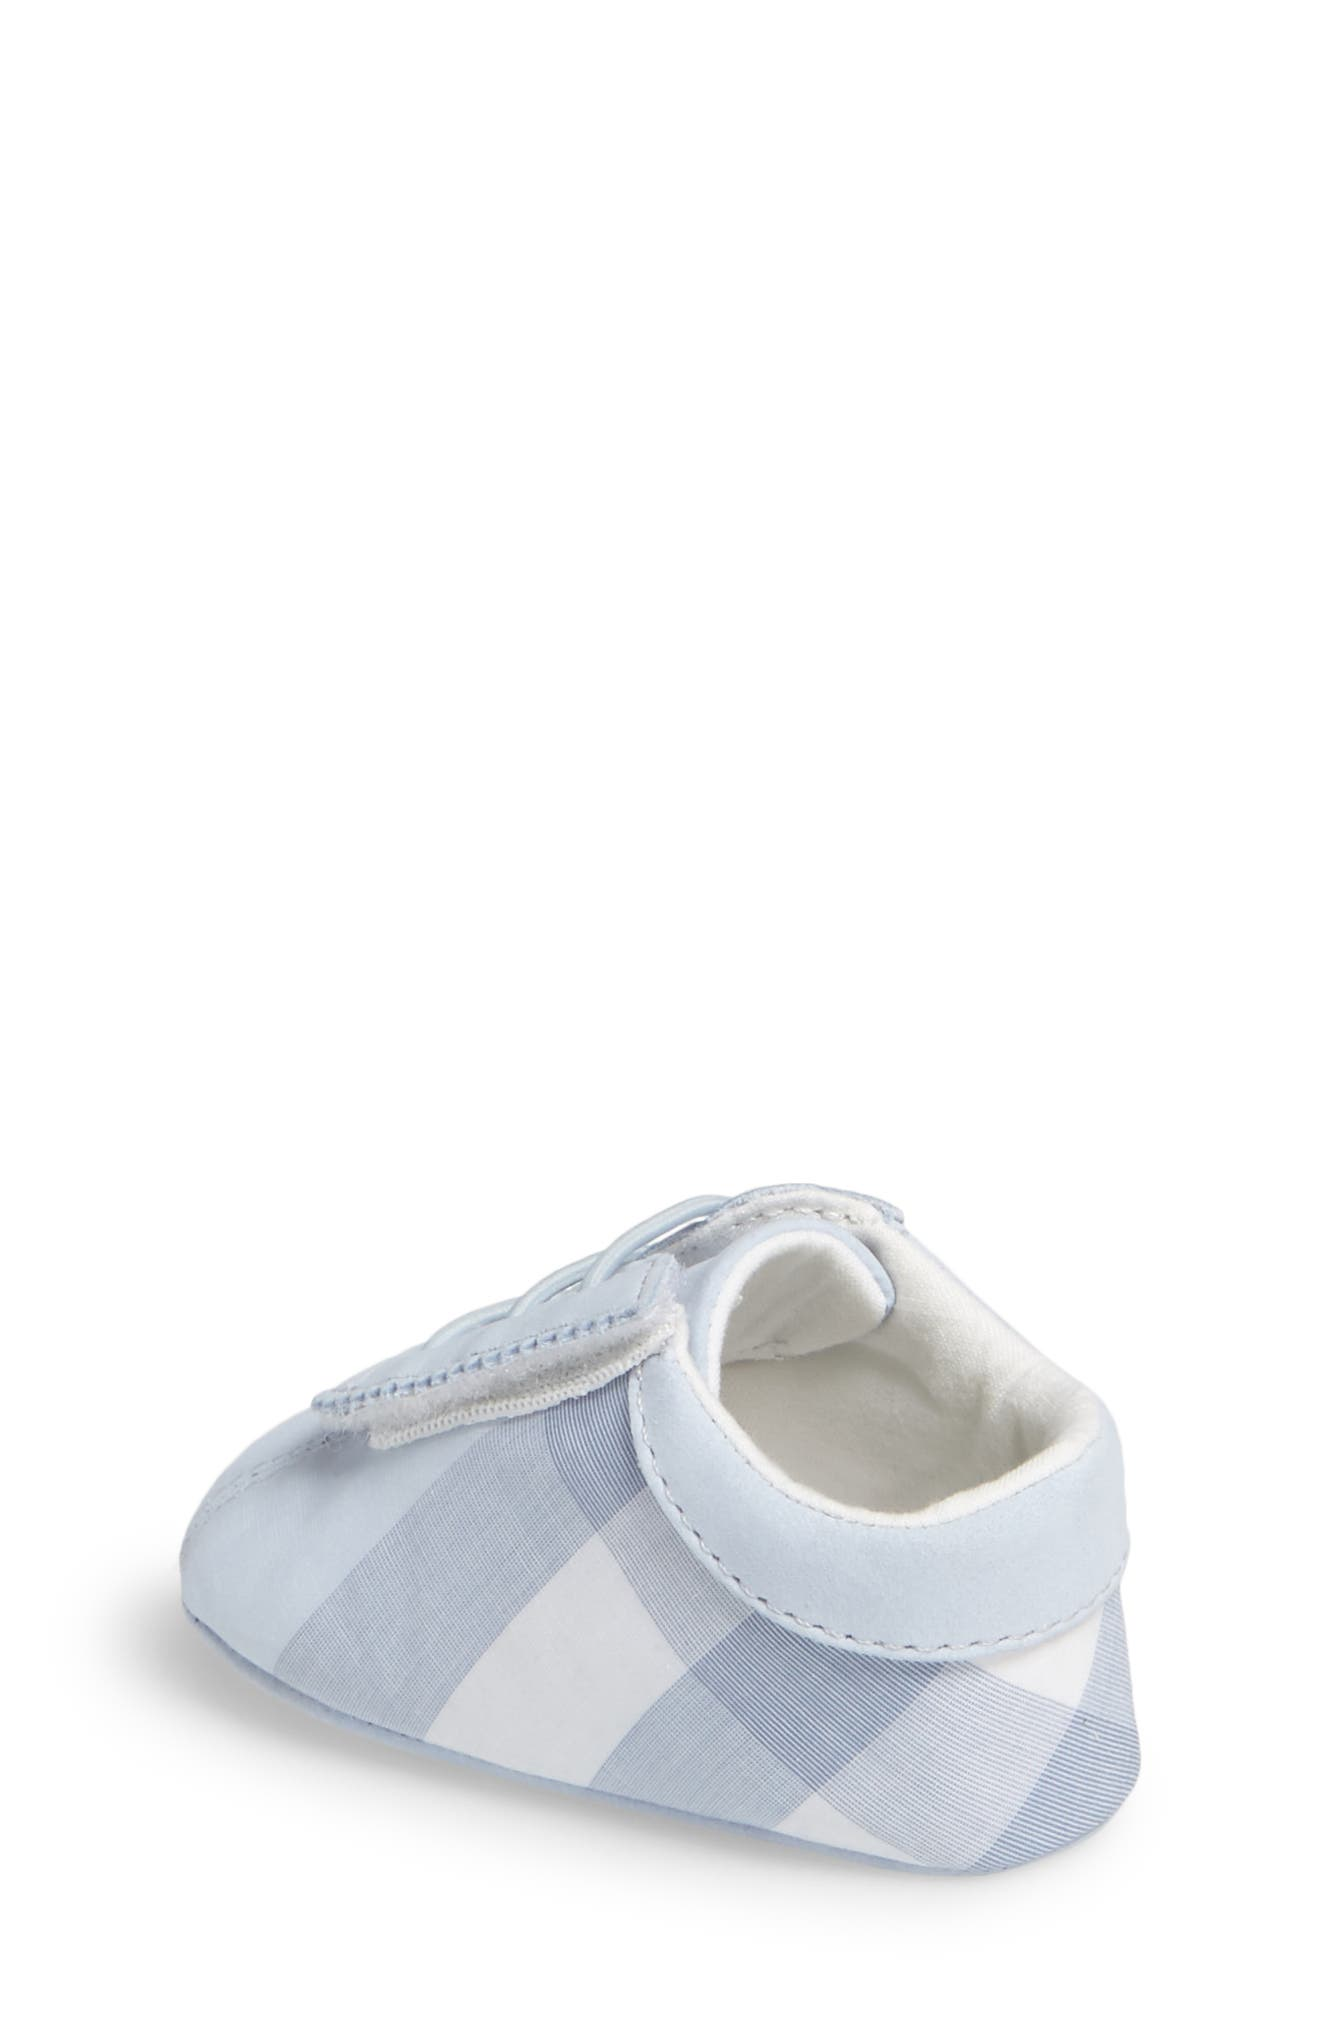 Alternate Image 2  - Burberry 'Bosco' Crib Shoe (Baby)